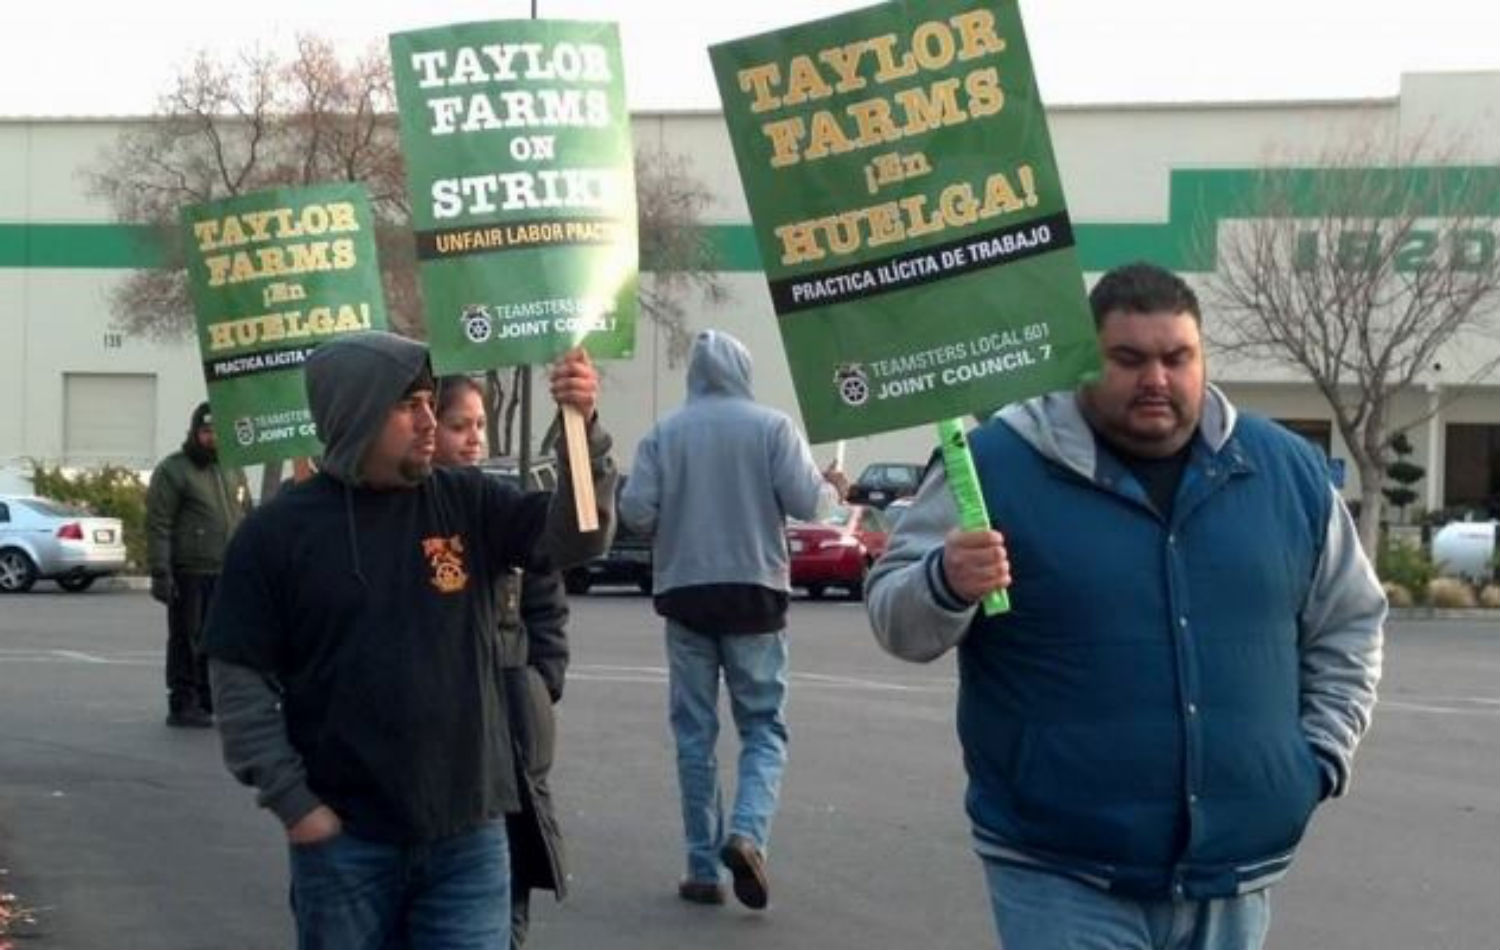 Taylor-Farms-workers-protest-unfair-labor-practices